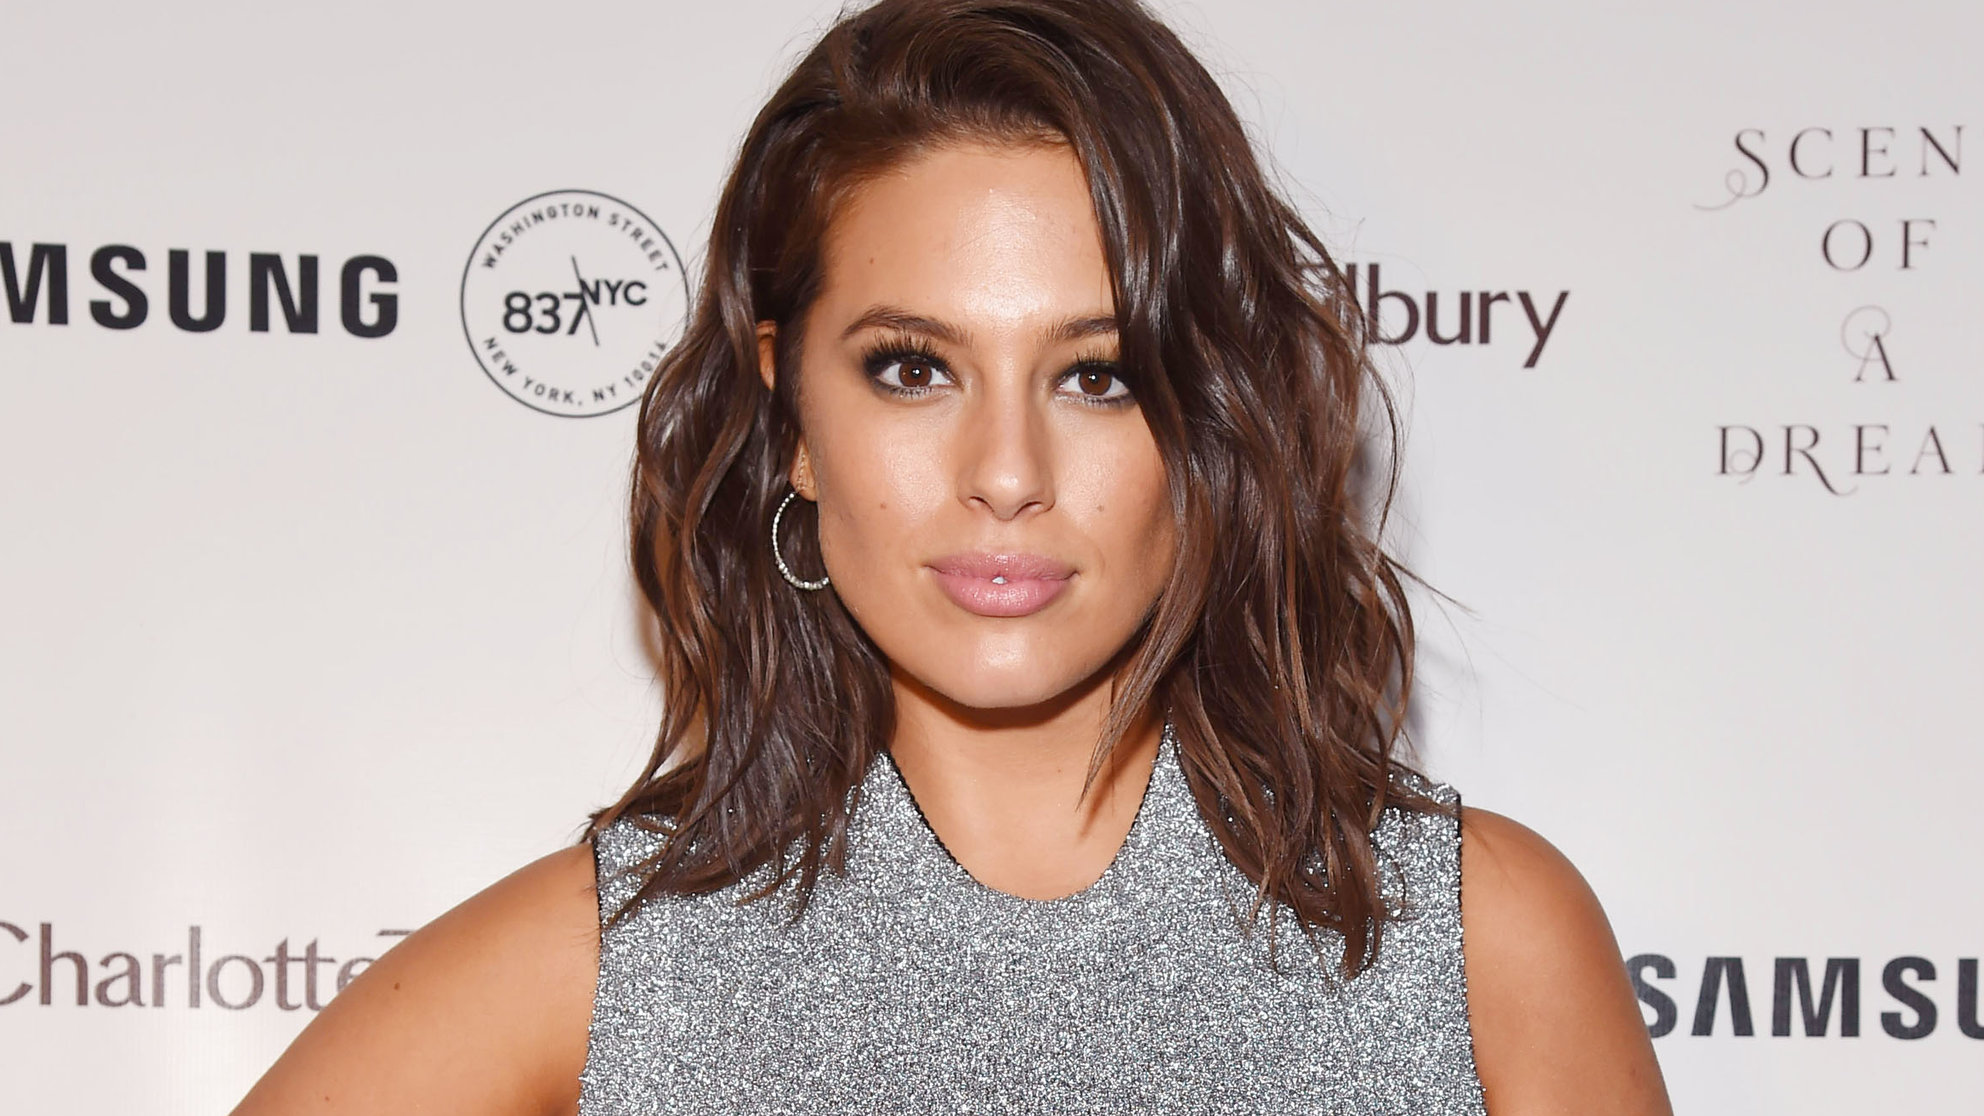 Ashley Graham Proudly Displays Her Cellulite: 'I'm Not Ashamed of a Few Lumps'